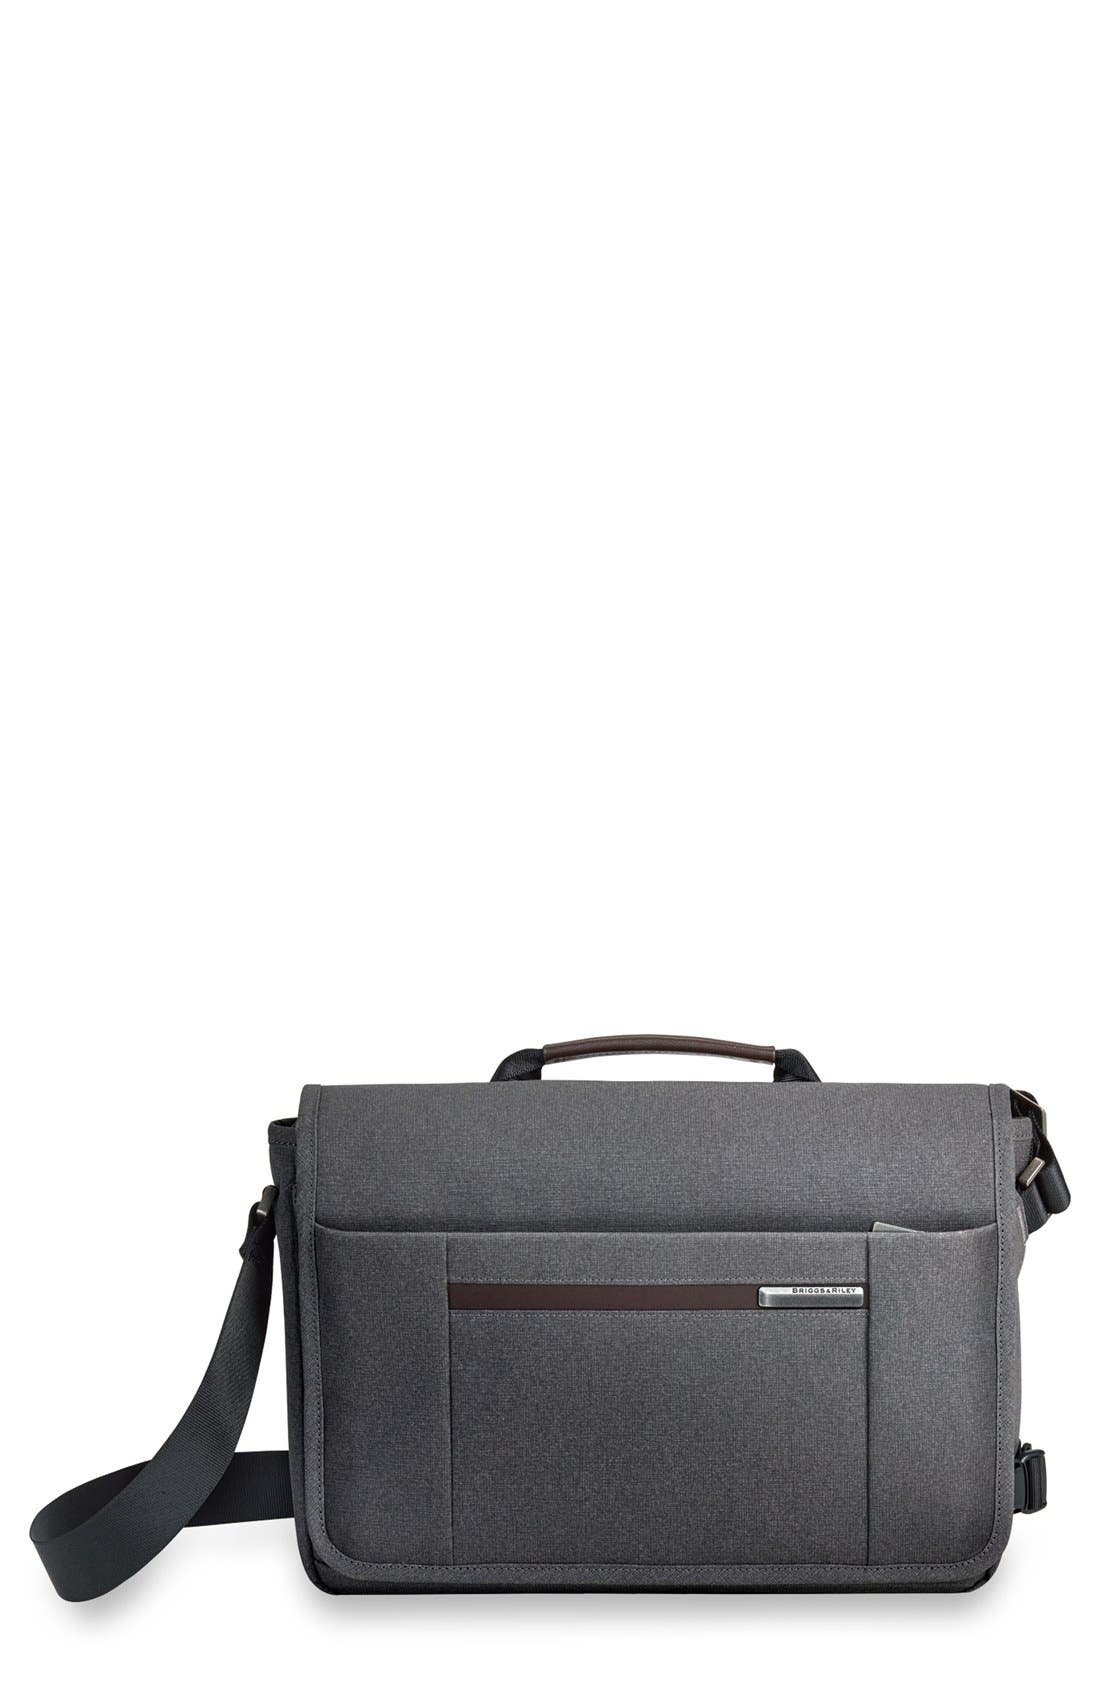 'Kinzie Street - Micro' Messenger Bag,                         Main,                         color, Grey